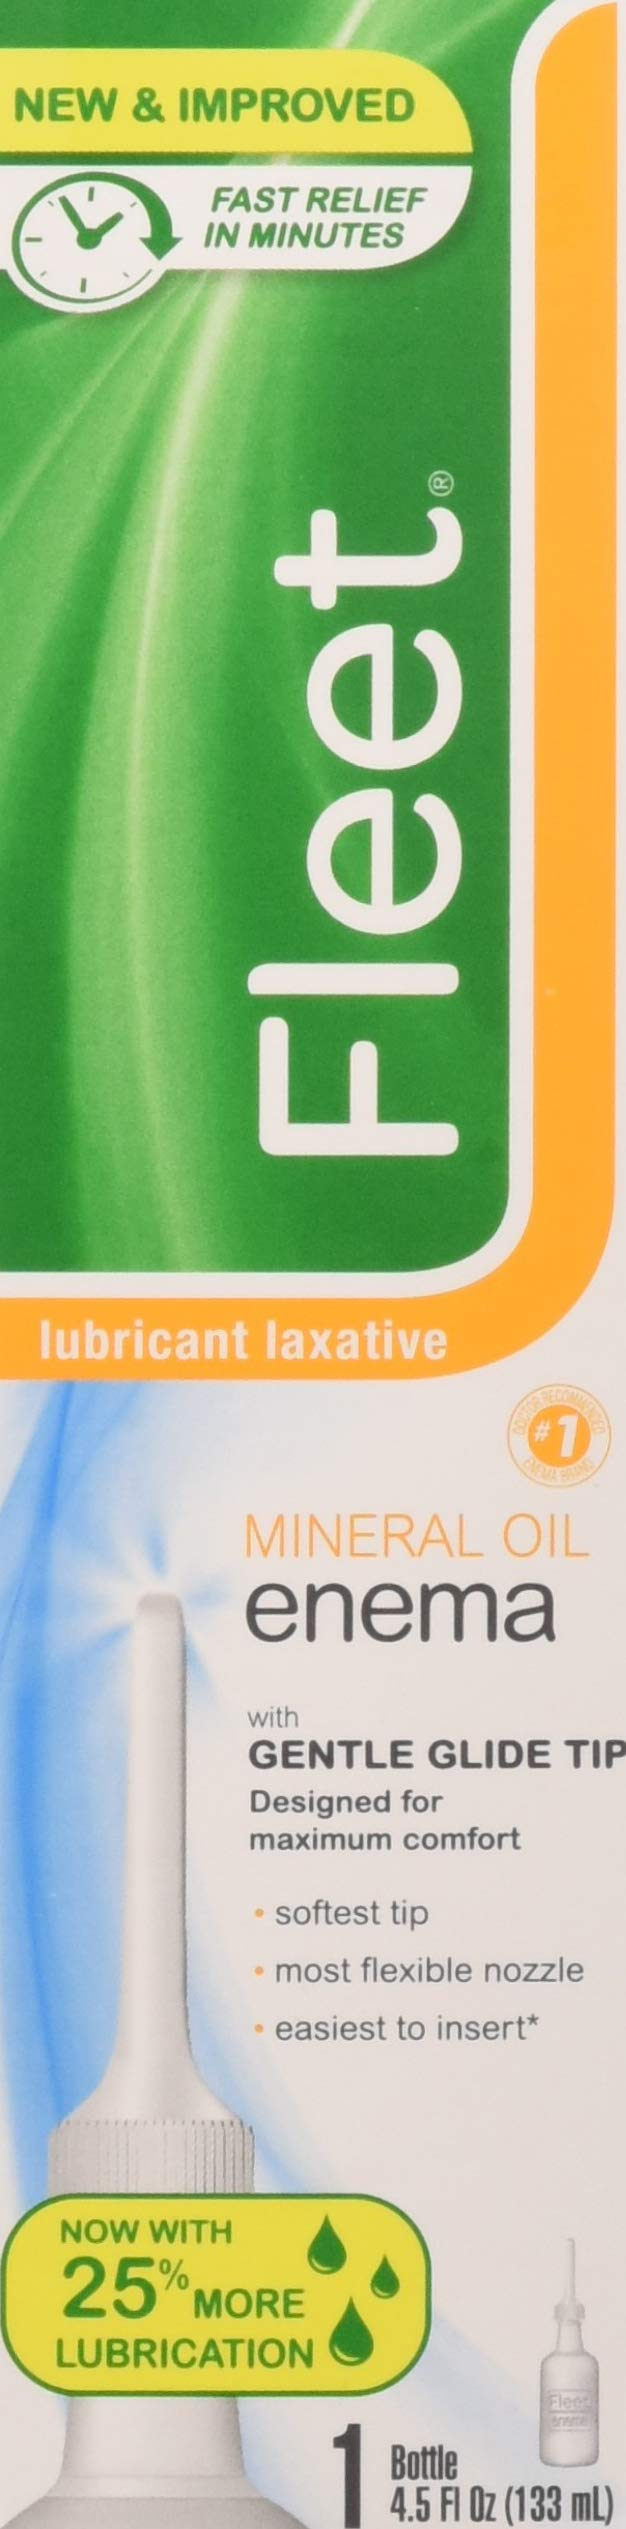 Fleet Lubricant Laxative Mineral Oil Enema | 4.5 oz | Pack of 12 | Fast Constipation Relief in Minutes by Fleet